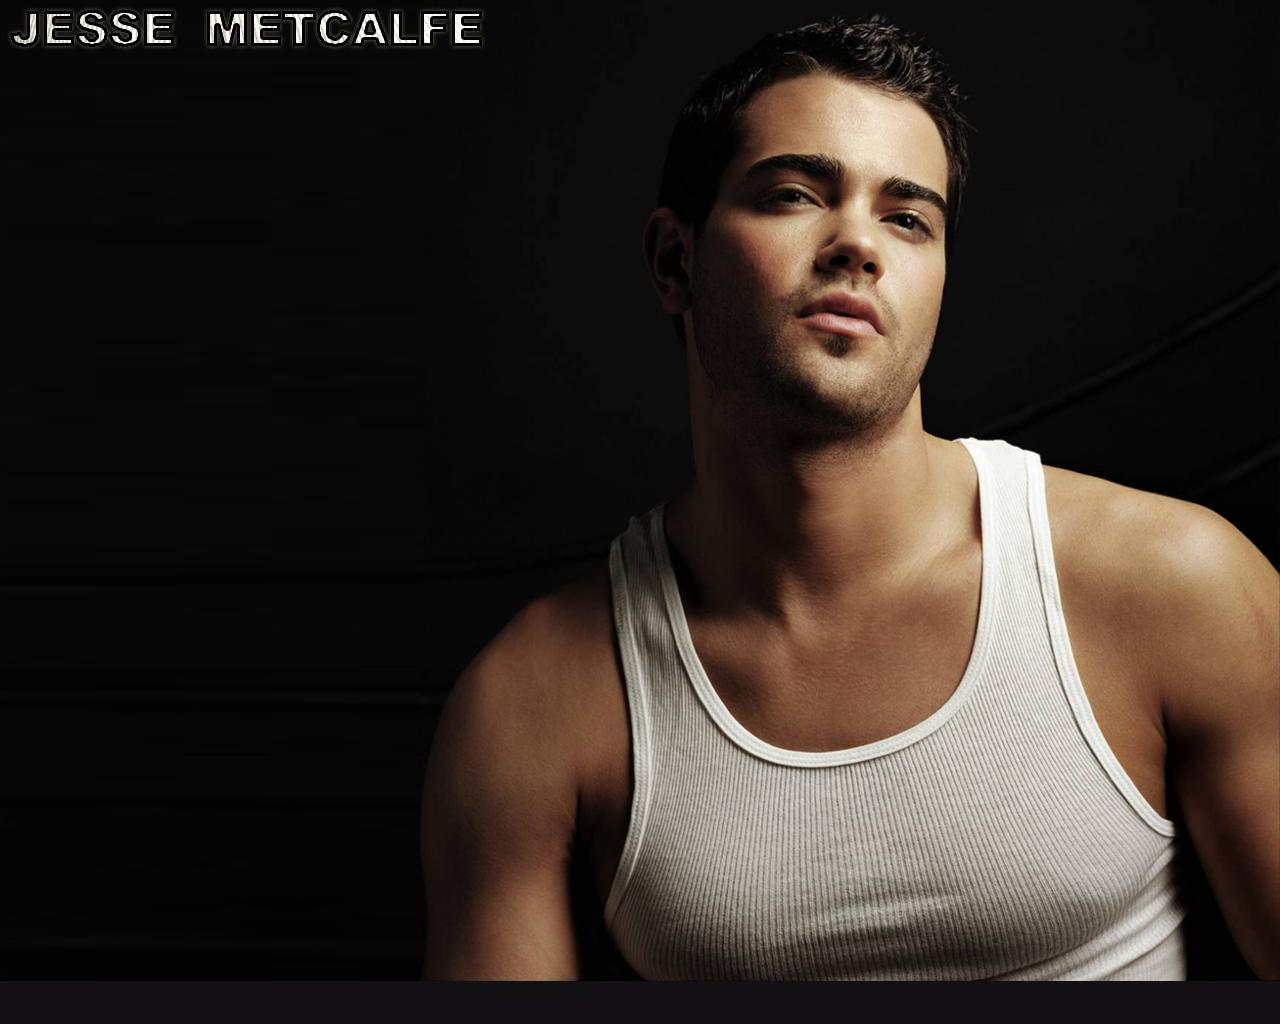 Jesse Metcalfe - Wallpaper Hot